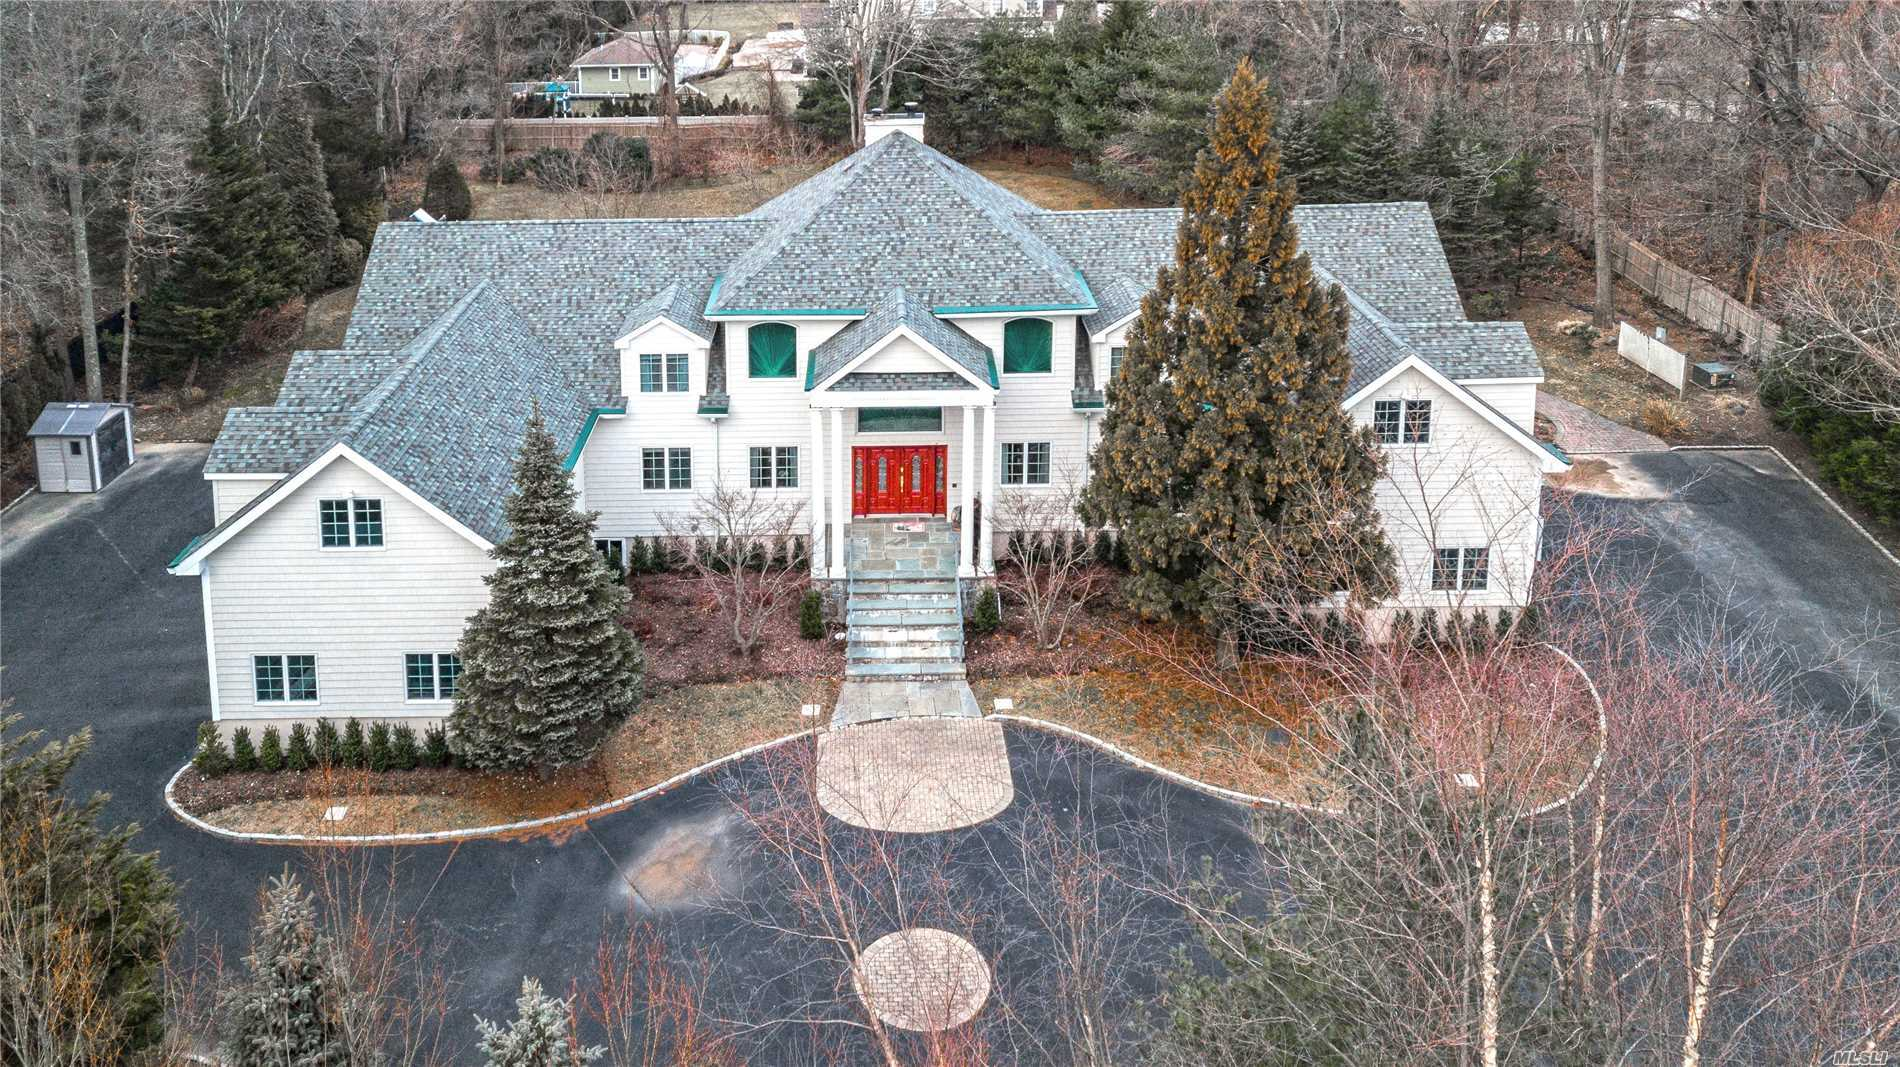 Elegant Estate Setting With Gated Long Driveway. Magnificent 6500+ Sq Ft Colonial On 1.79 Acres, Architecturally Dramatic 2 Story Foyer With Sweeping Staircase To 2nd Floor Balcony. Interior Is Accented By High Ceilings, Archways, Detailed Moldings & Intricate Woodwork. Grand Principal Rooms Are Perfect For Entertaining Including A Home Theater & Gym In Finished Basement. 2 Master Suites one on Main Level! Enjoy Huntington Village Restaurants, Shopping, Movie Theaters & Museum. Harborfields Sd.